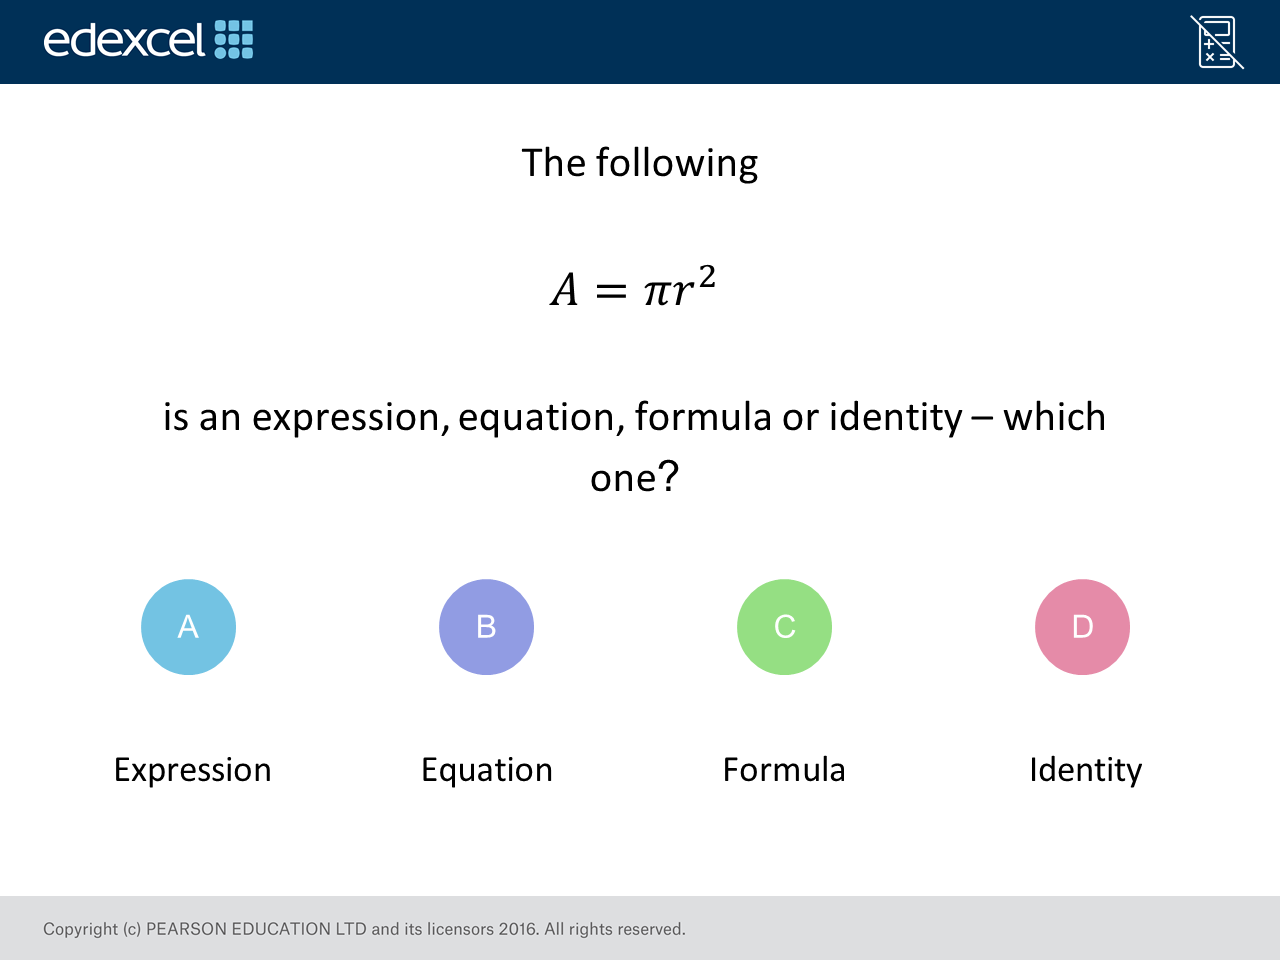 worksheet Expressions And Equations Worksheet expression formula identity equation foundationhigher gcse maths question of the week download worksheet